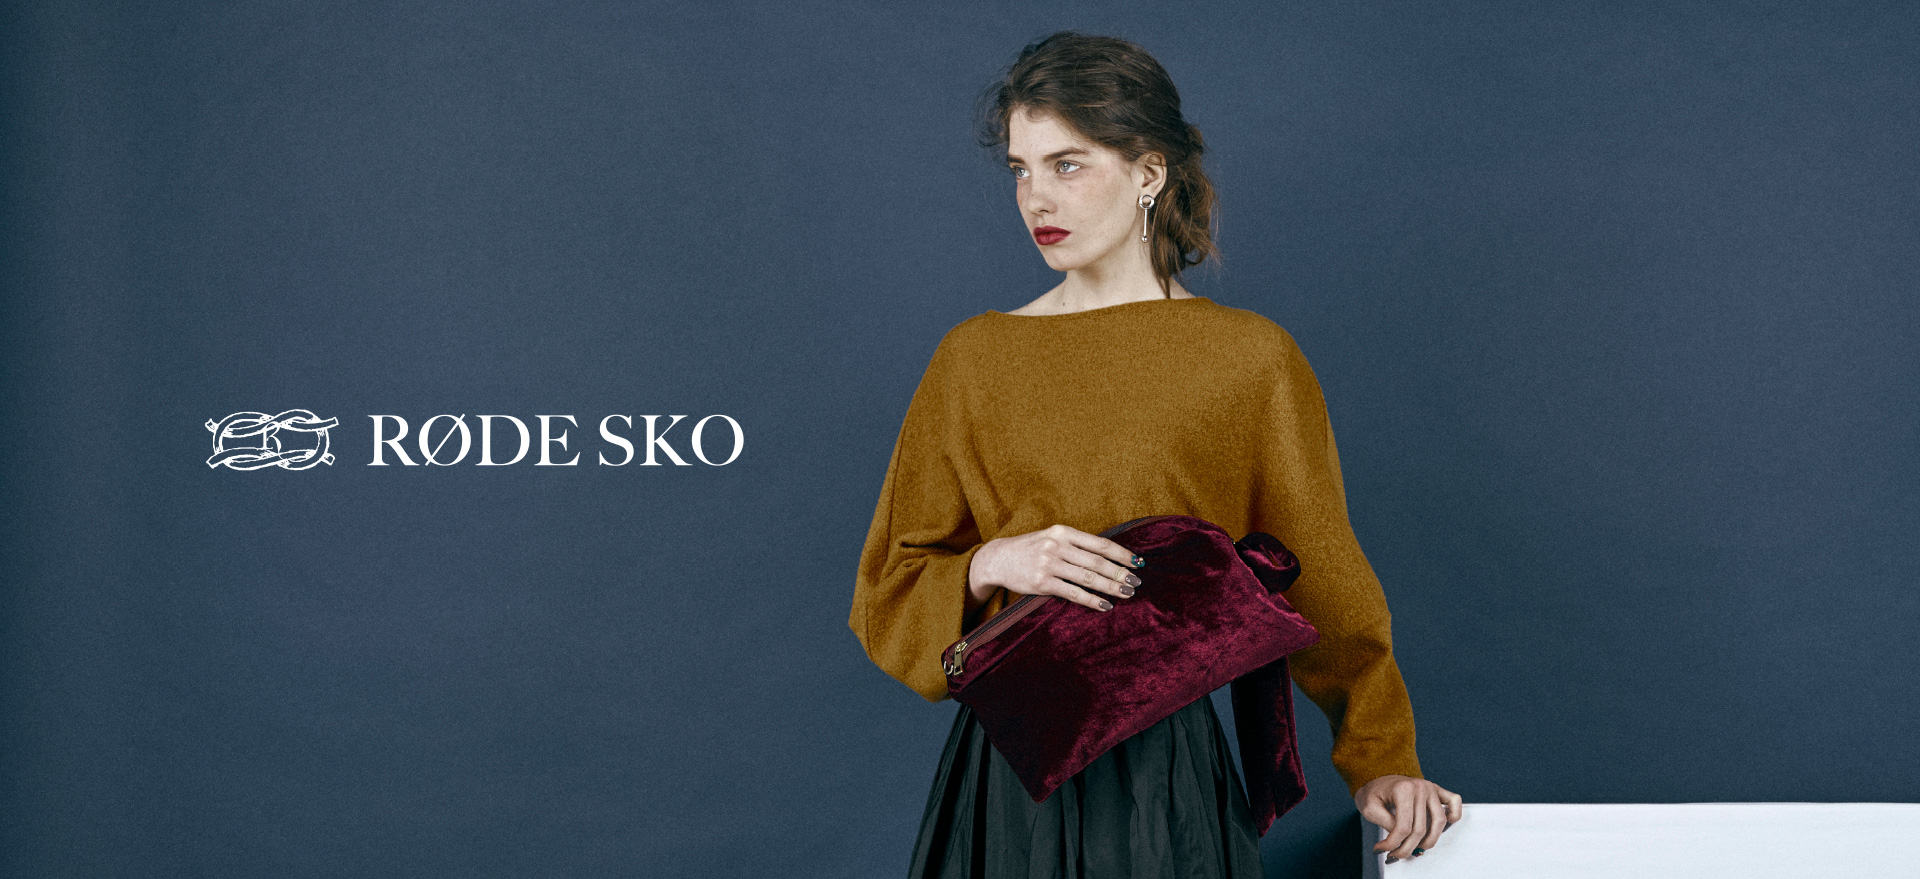 RODE SKO 2017 AUTUMN & WINTER